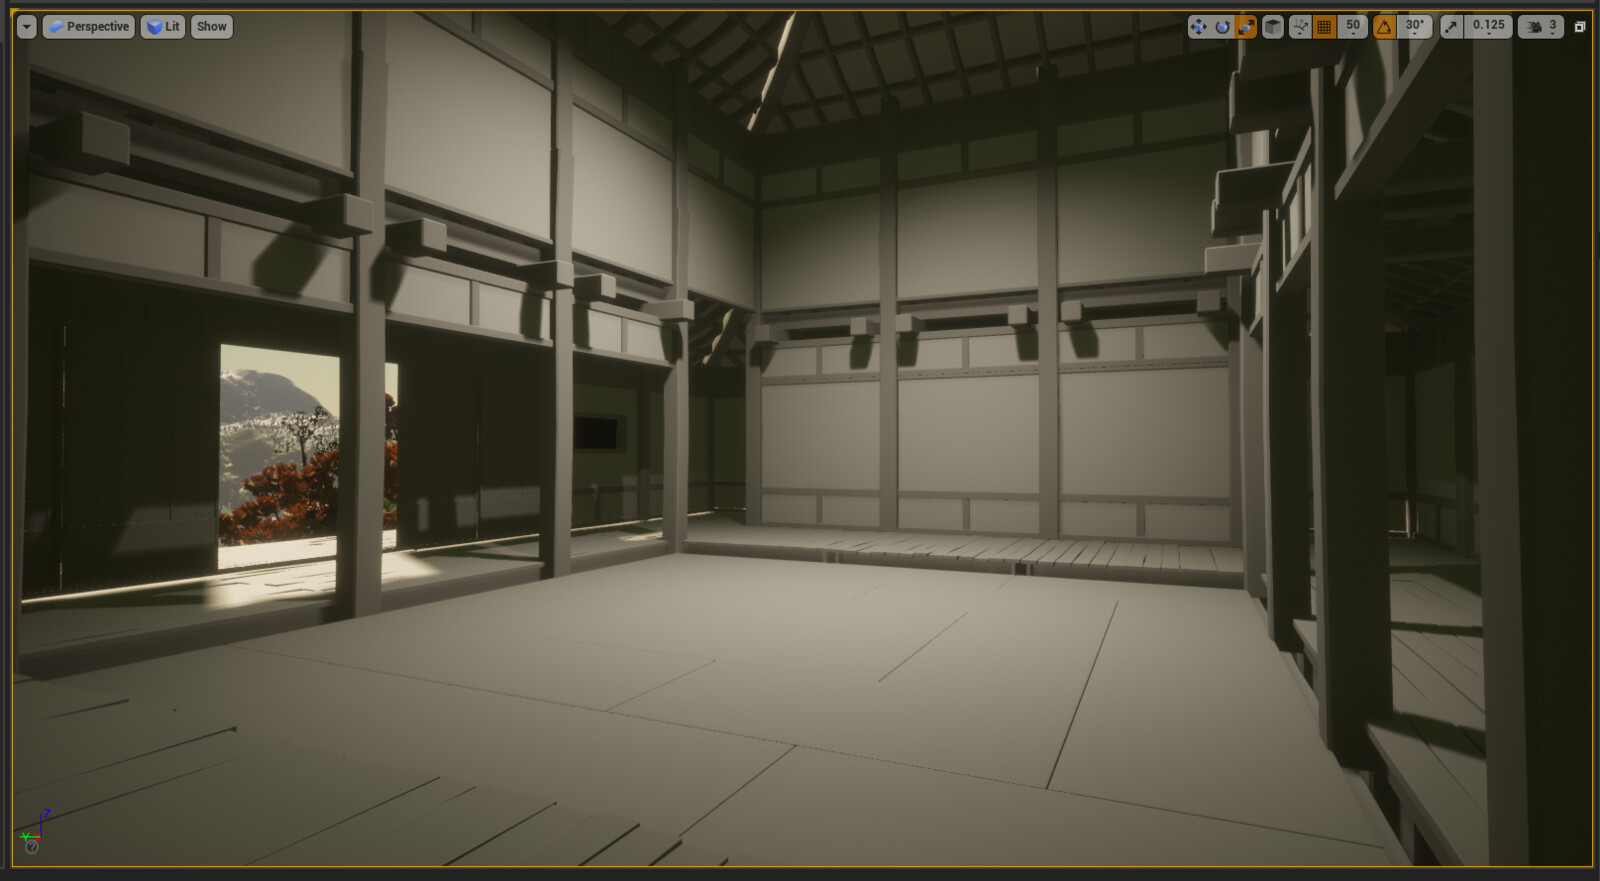 First images of the walls and roof assembled in UE4.